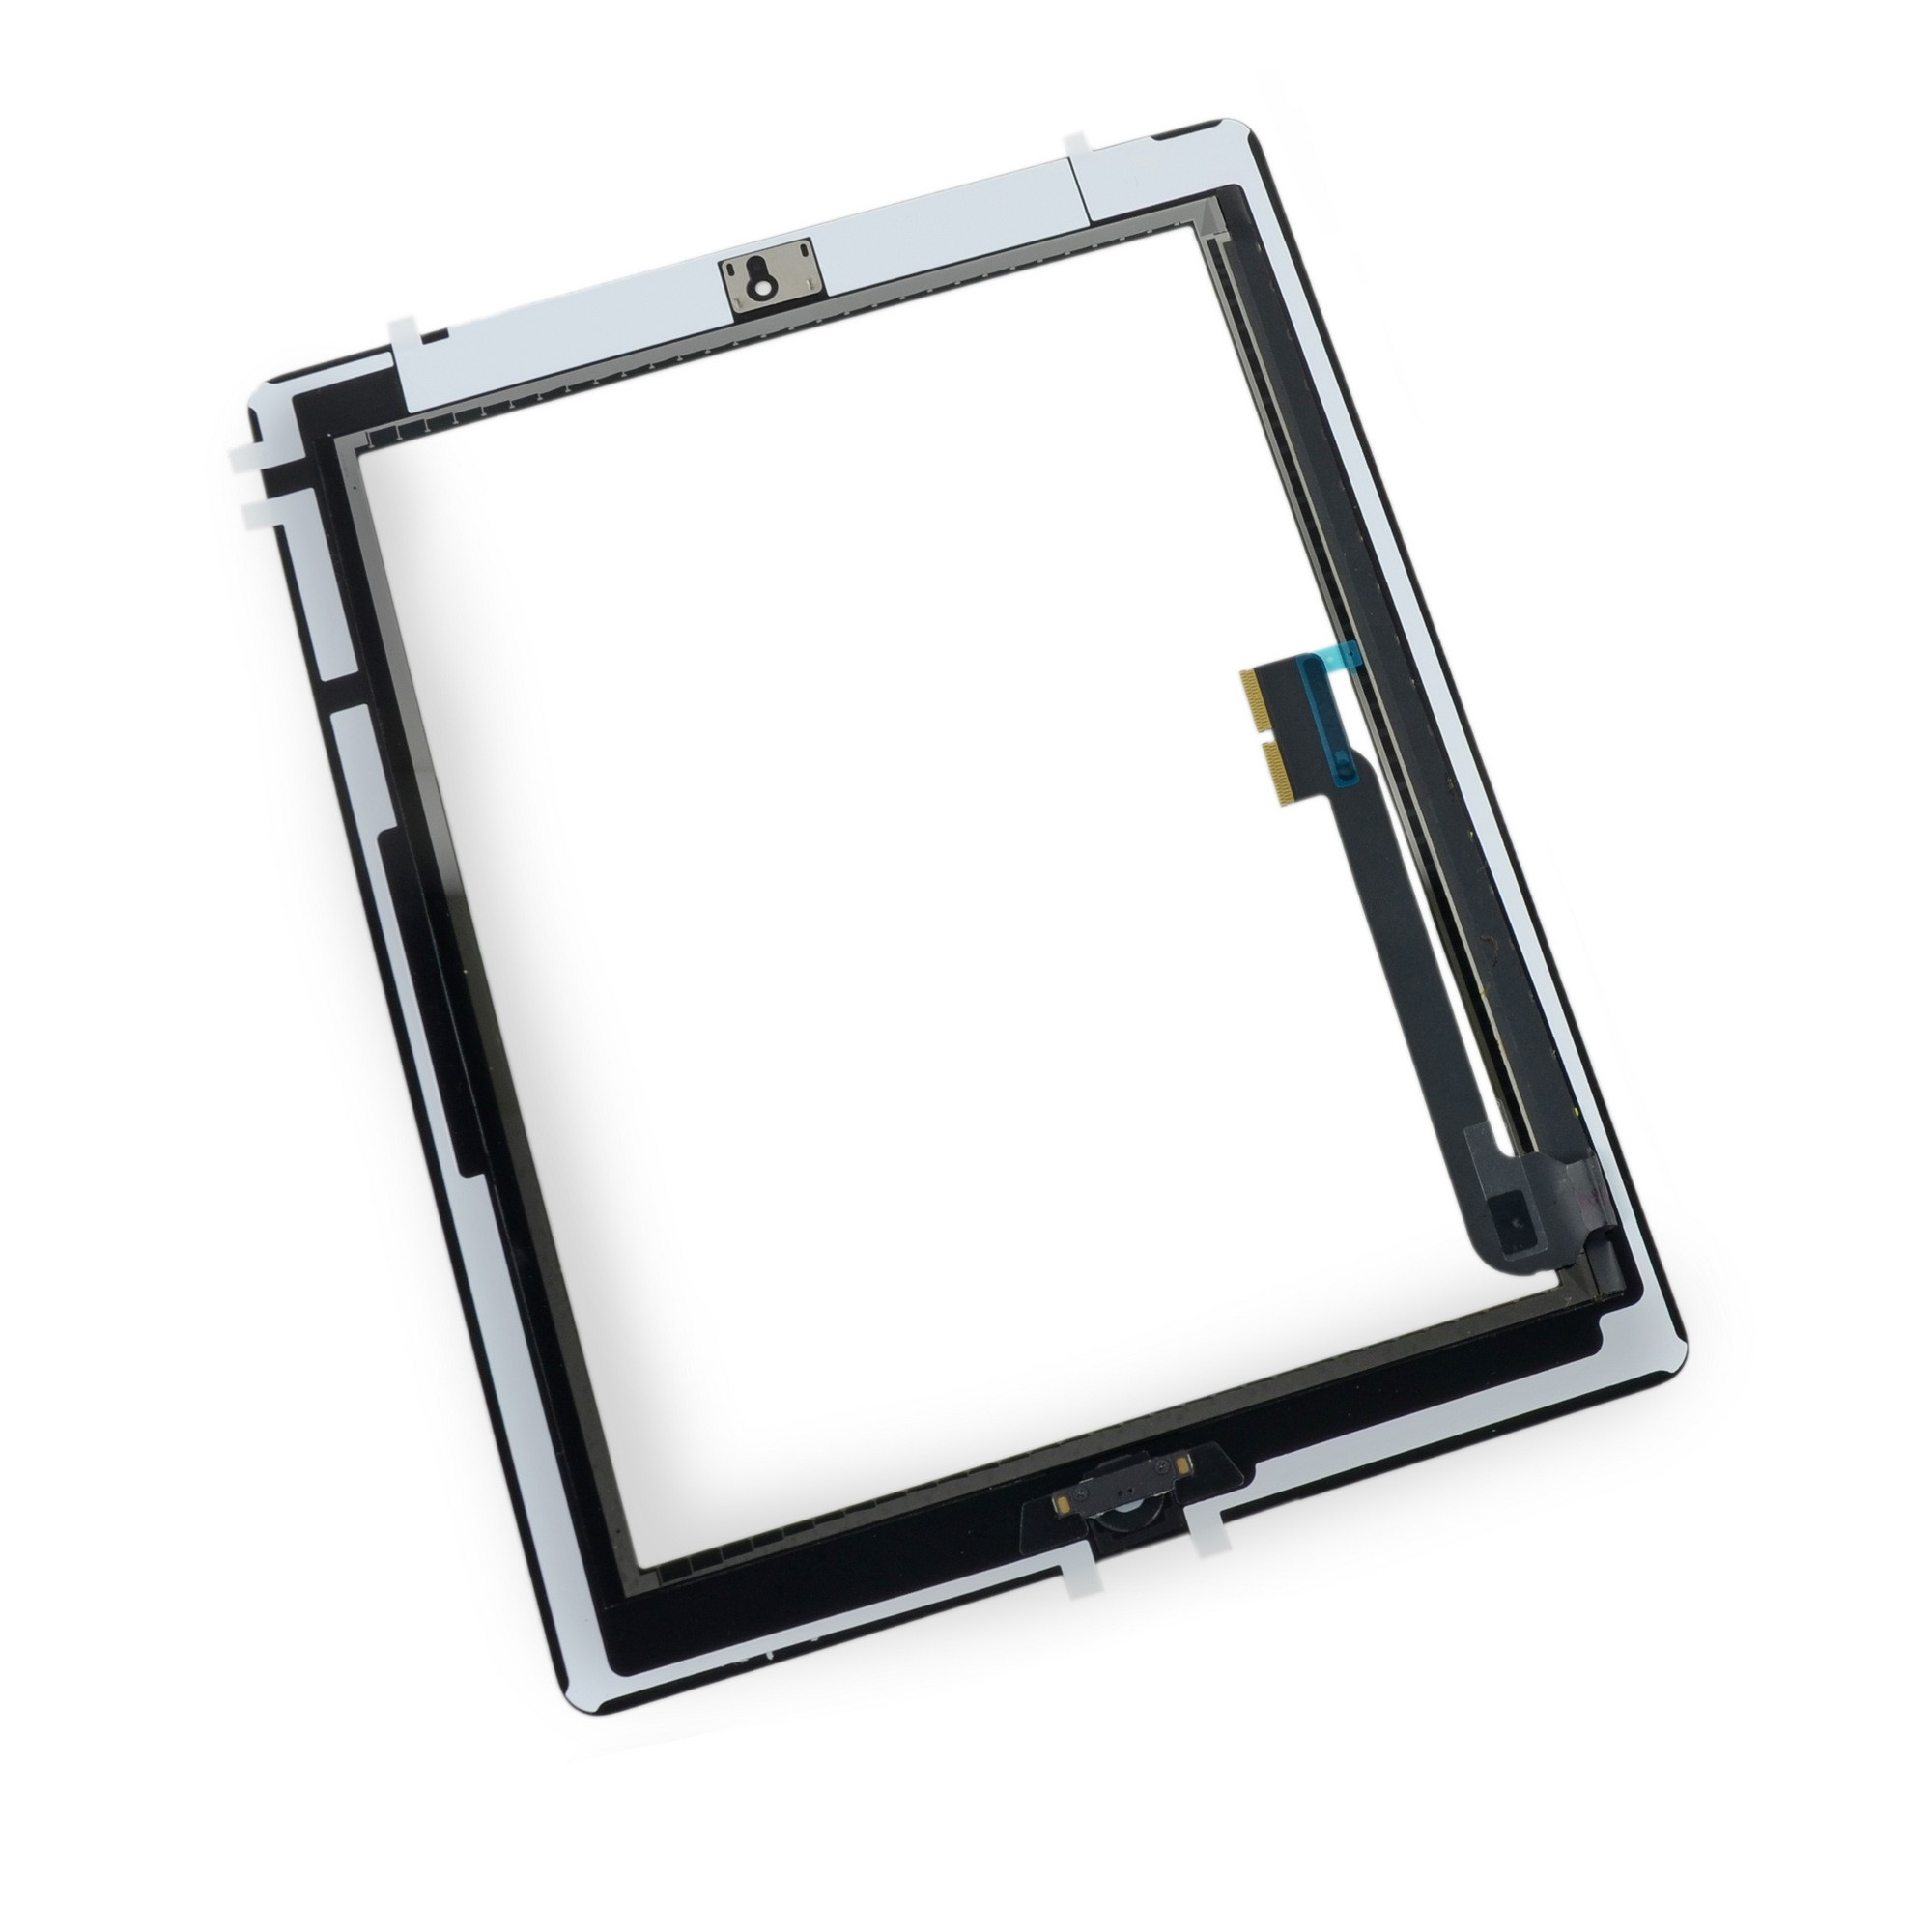 iPad 3 Front Glass/Digitizer Touch Panel Full Assembly, Part Only, New - Black, IF116-018-1